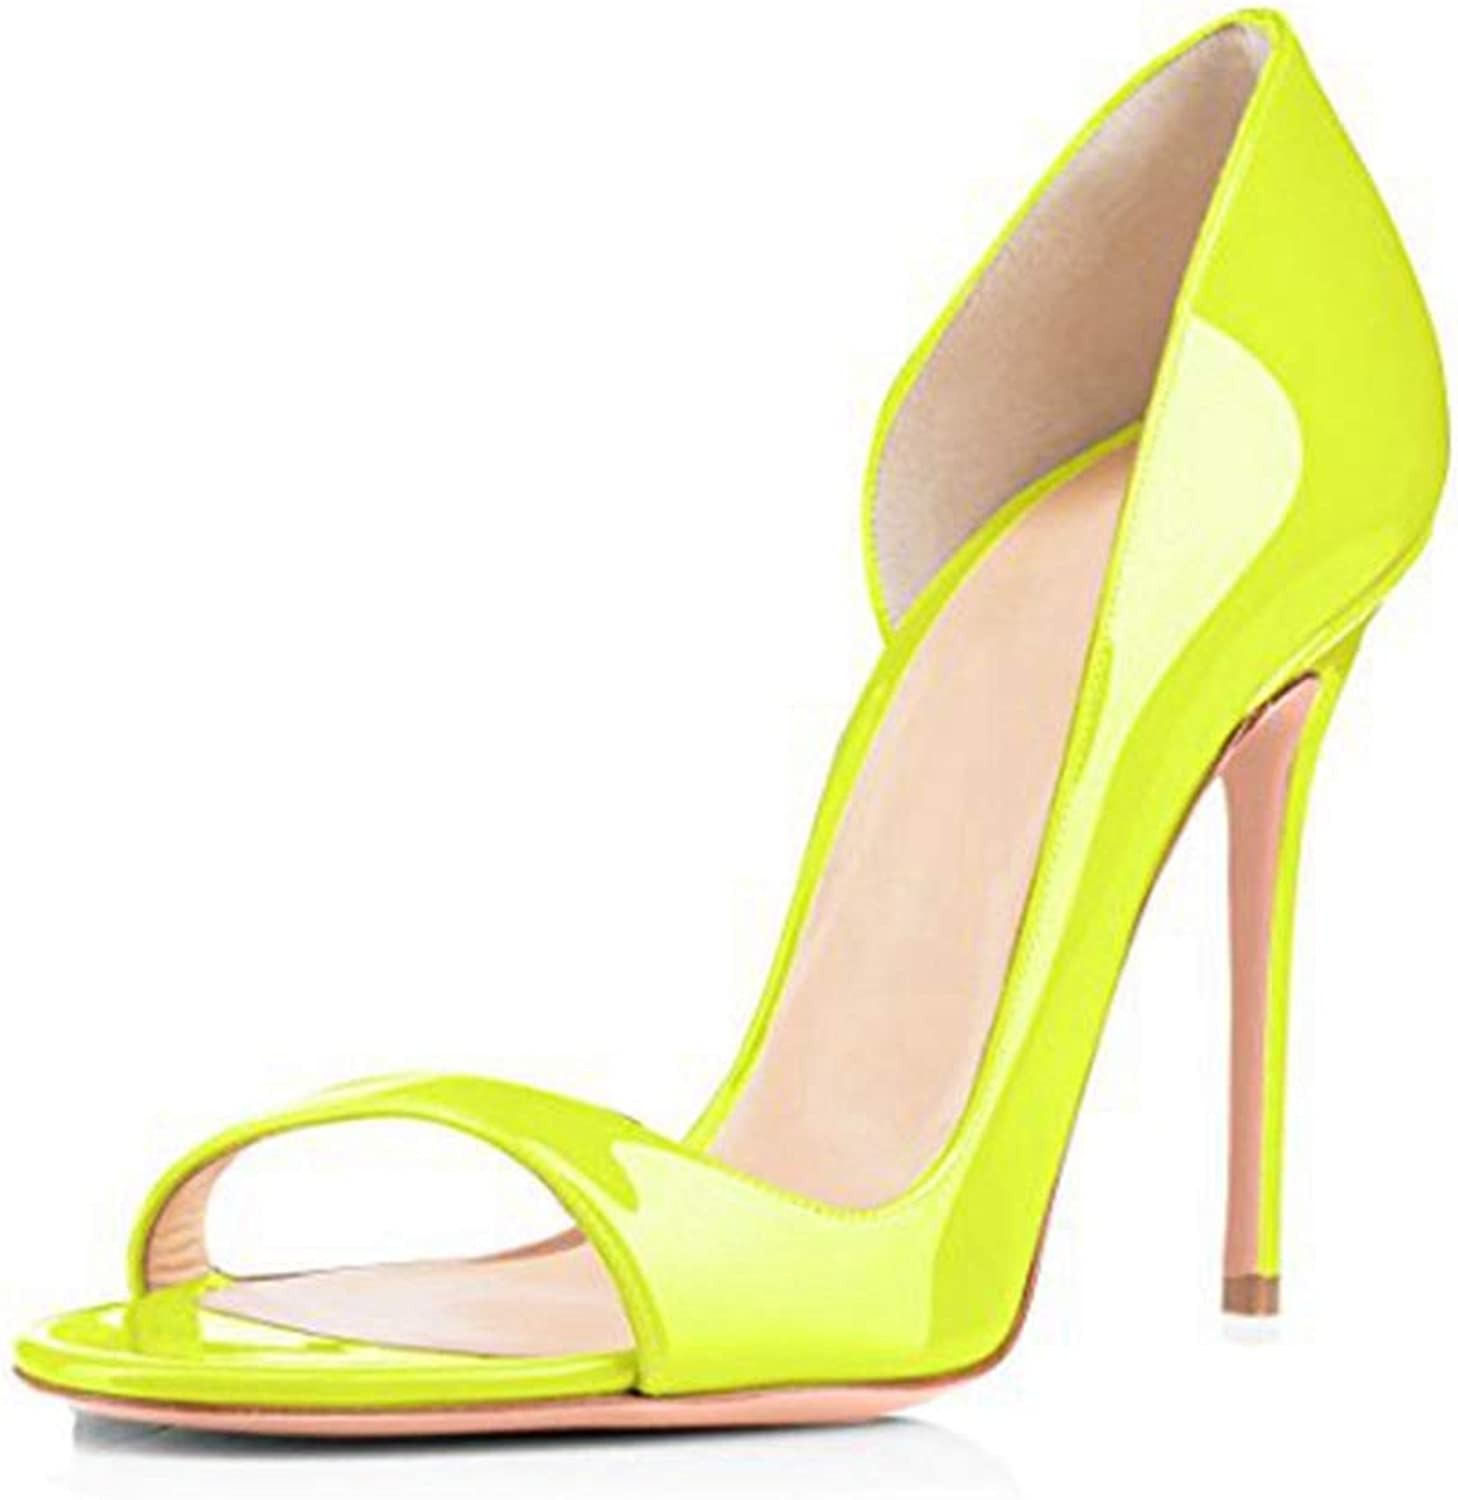 Women Heeled Sandal Ladies Thin High Heels Green Sandals Peep Toe Party Slip-on shoes